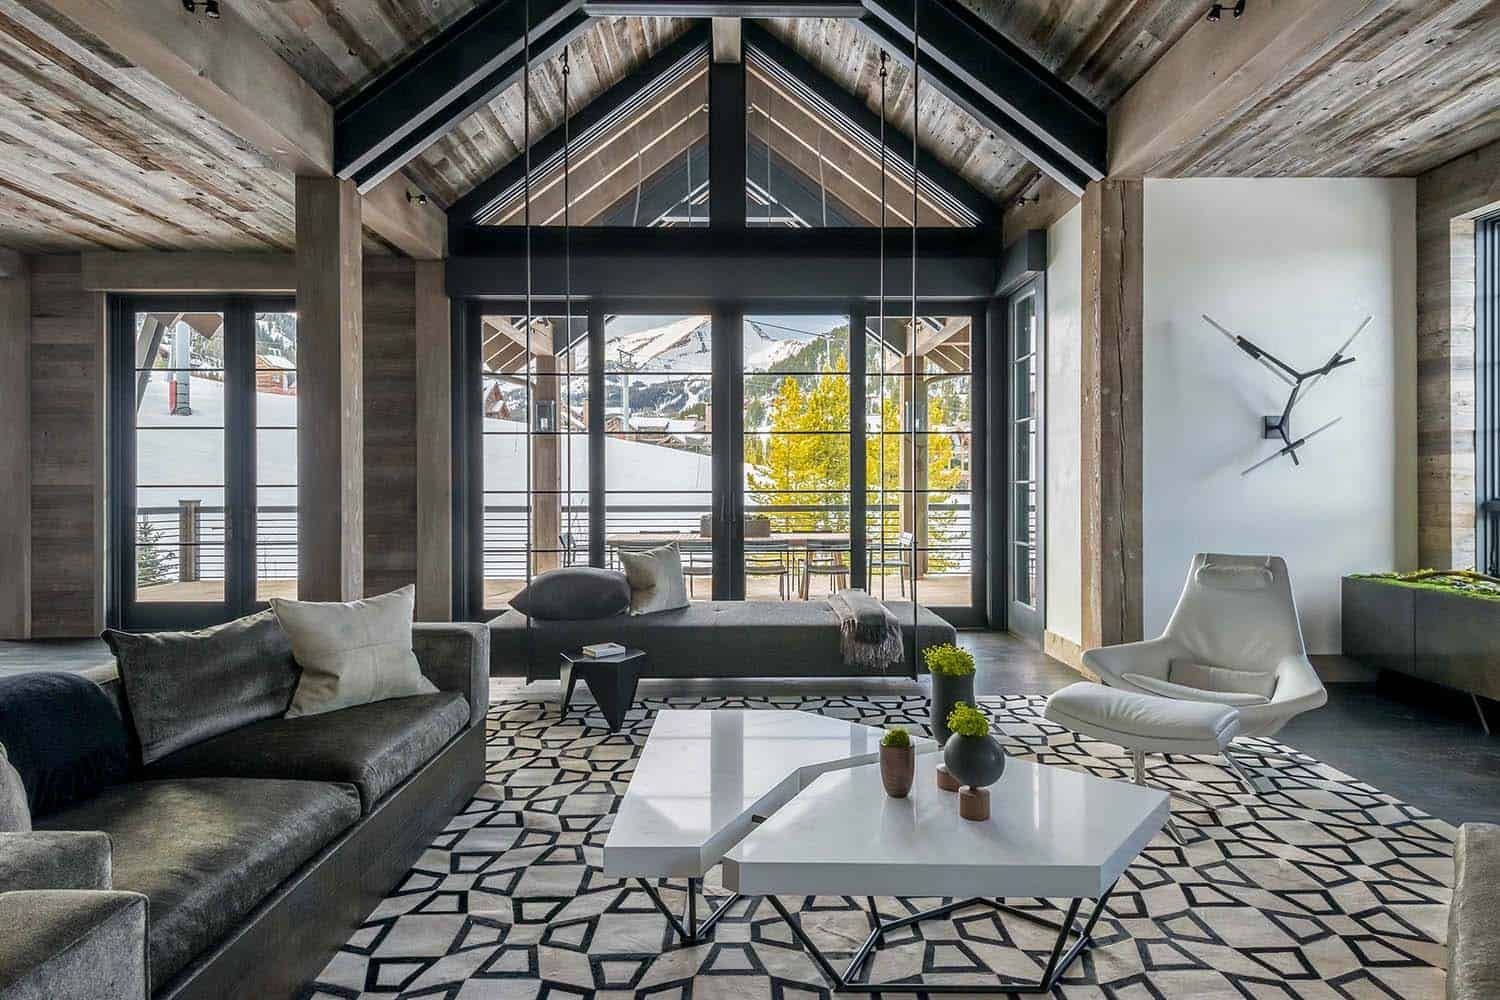 Hillside Snowcrest The Ultimate Modern Rustic Ski Chalet In Montana Living Room Furniture Inspiration Apartment Furniture Layout Small Apartment Furniture Layout